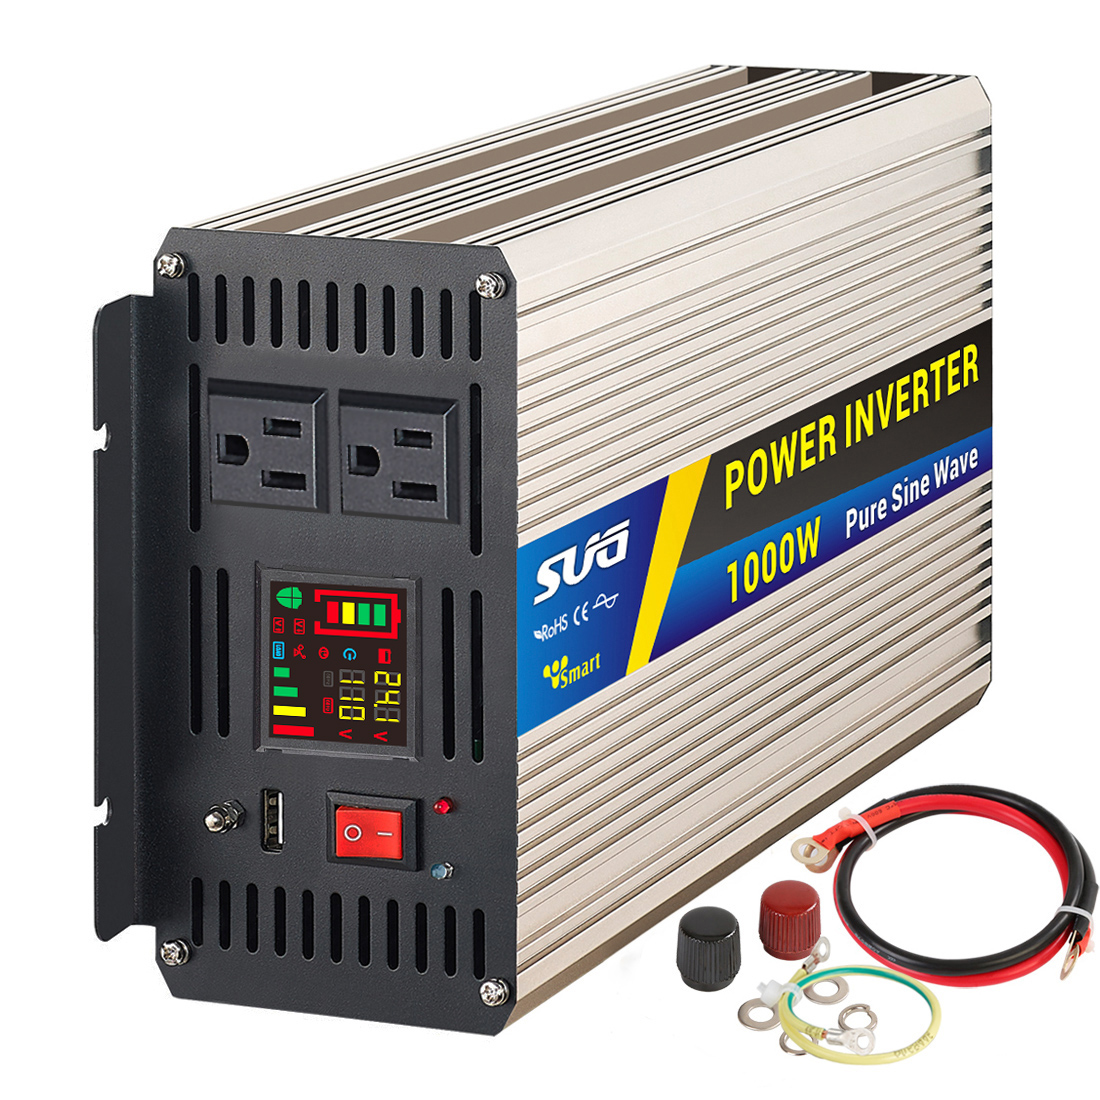 SGP-E 500W Pure Sine Wave Inverter